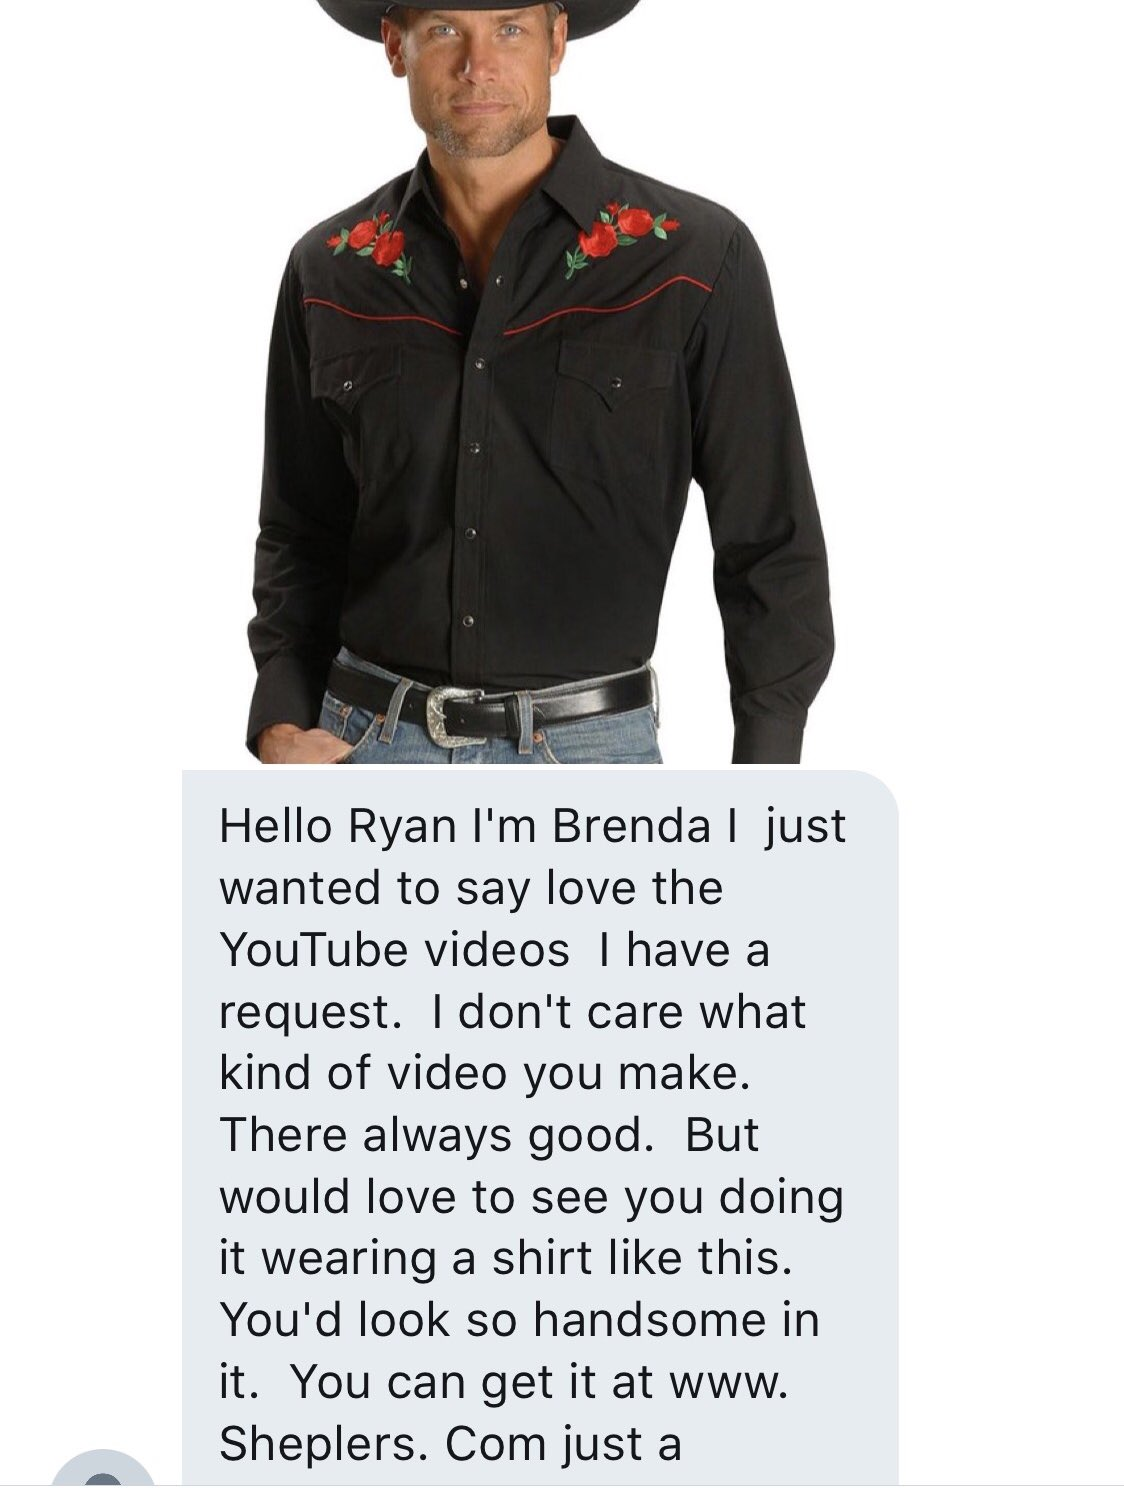 This is the greatest dm I have ever received, looks like I gotta get this shirt now just for her https://t.co/SILHTGxijA